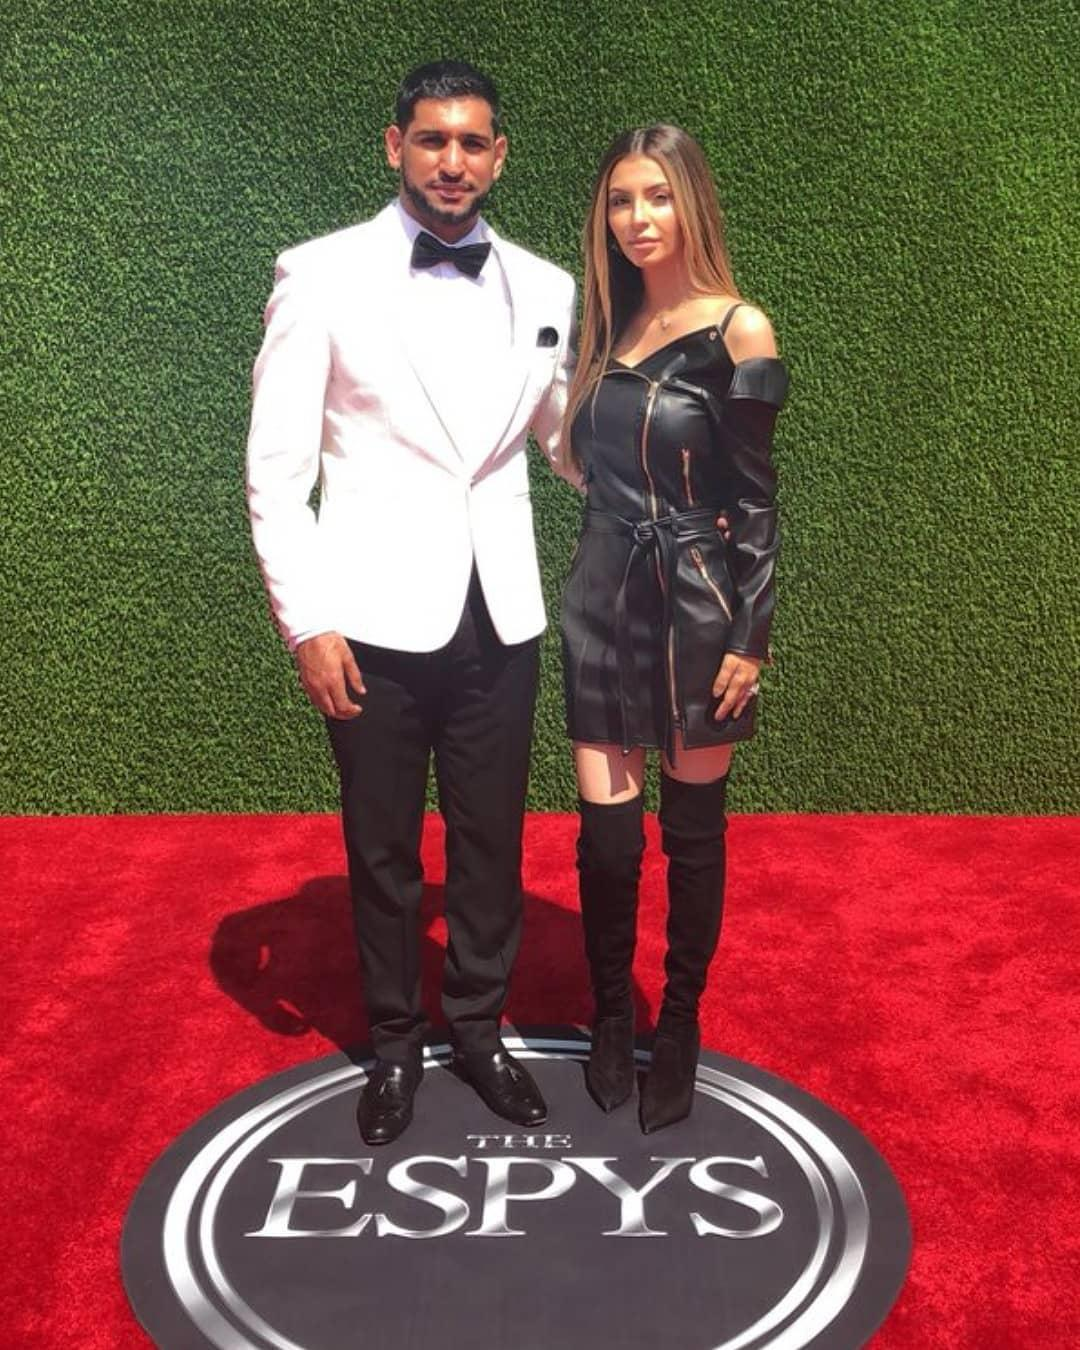 Amir Khan, pictured here with partner Faryal Makhdoom, is eyeing up a fight with Manny Pacquiao in the future